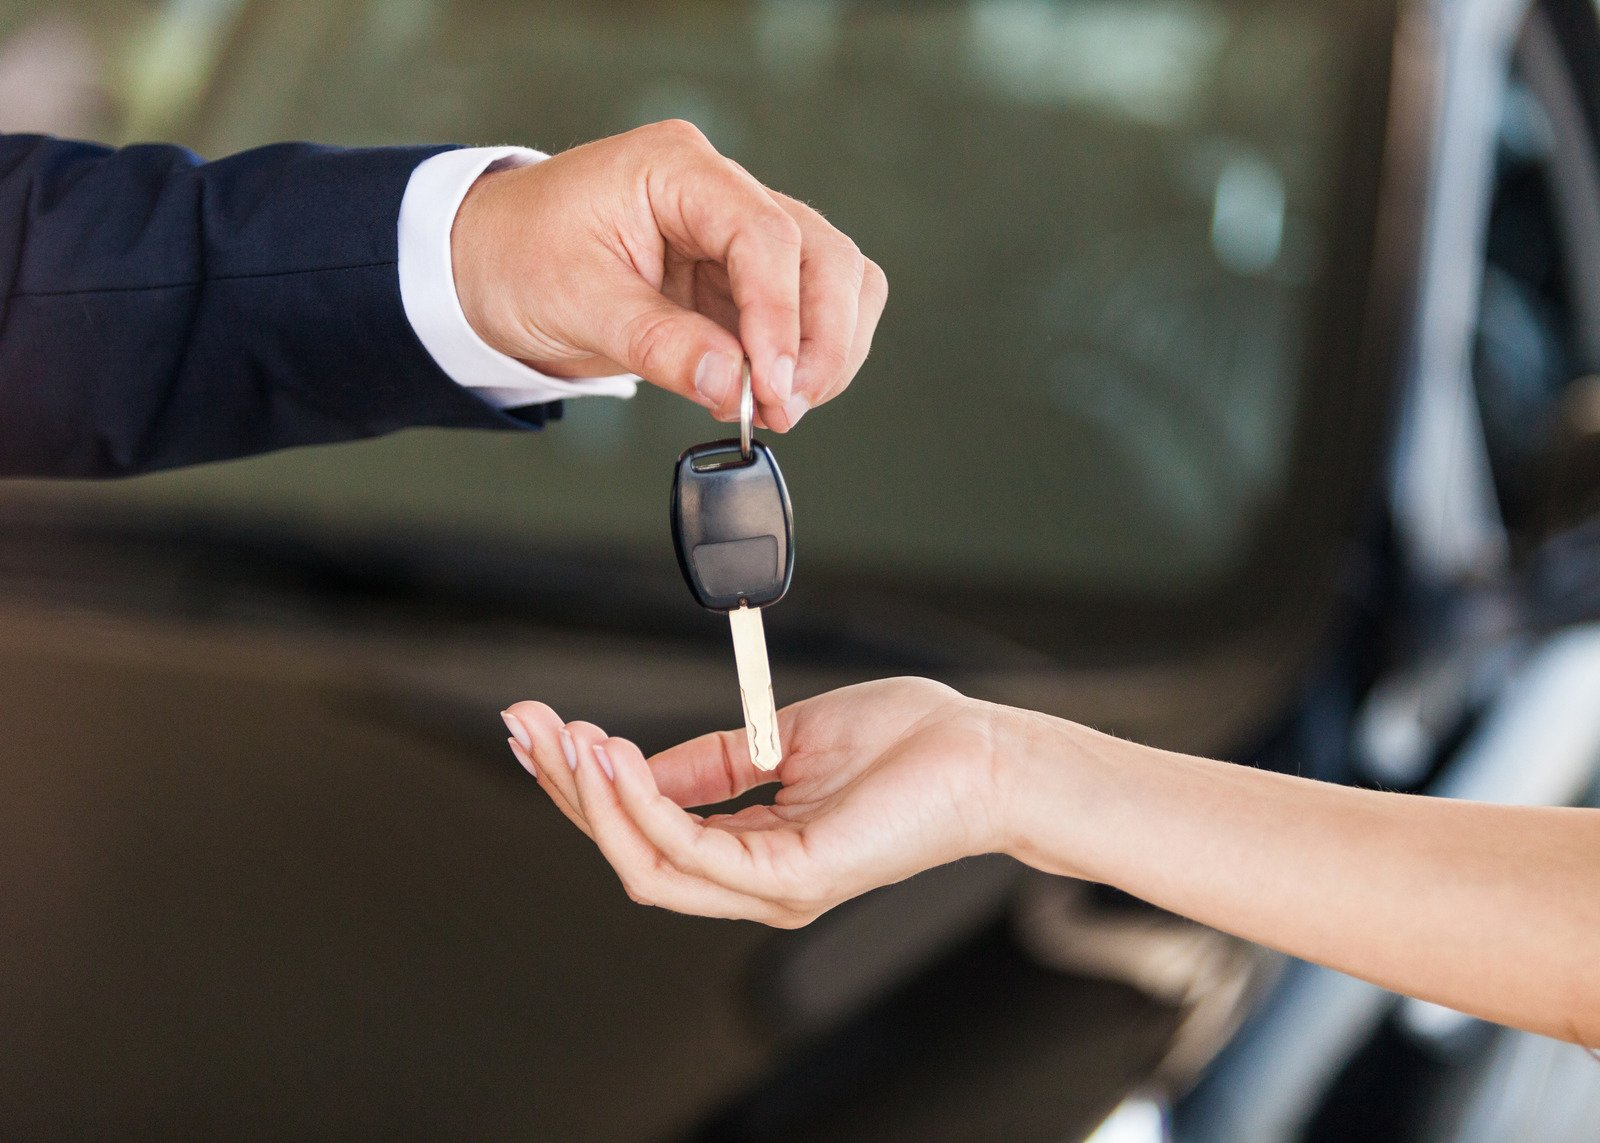 Test drive insurance handing over the keys